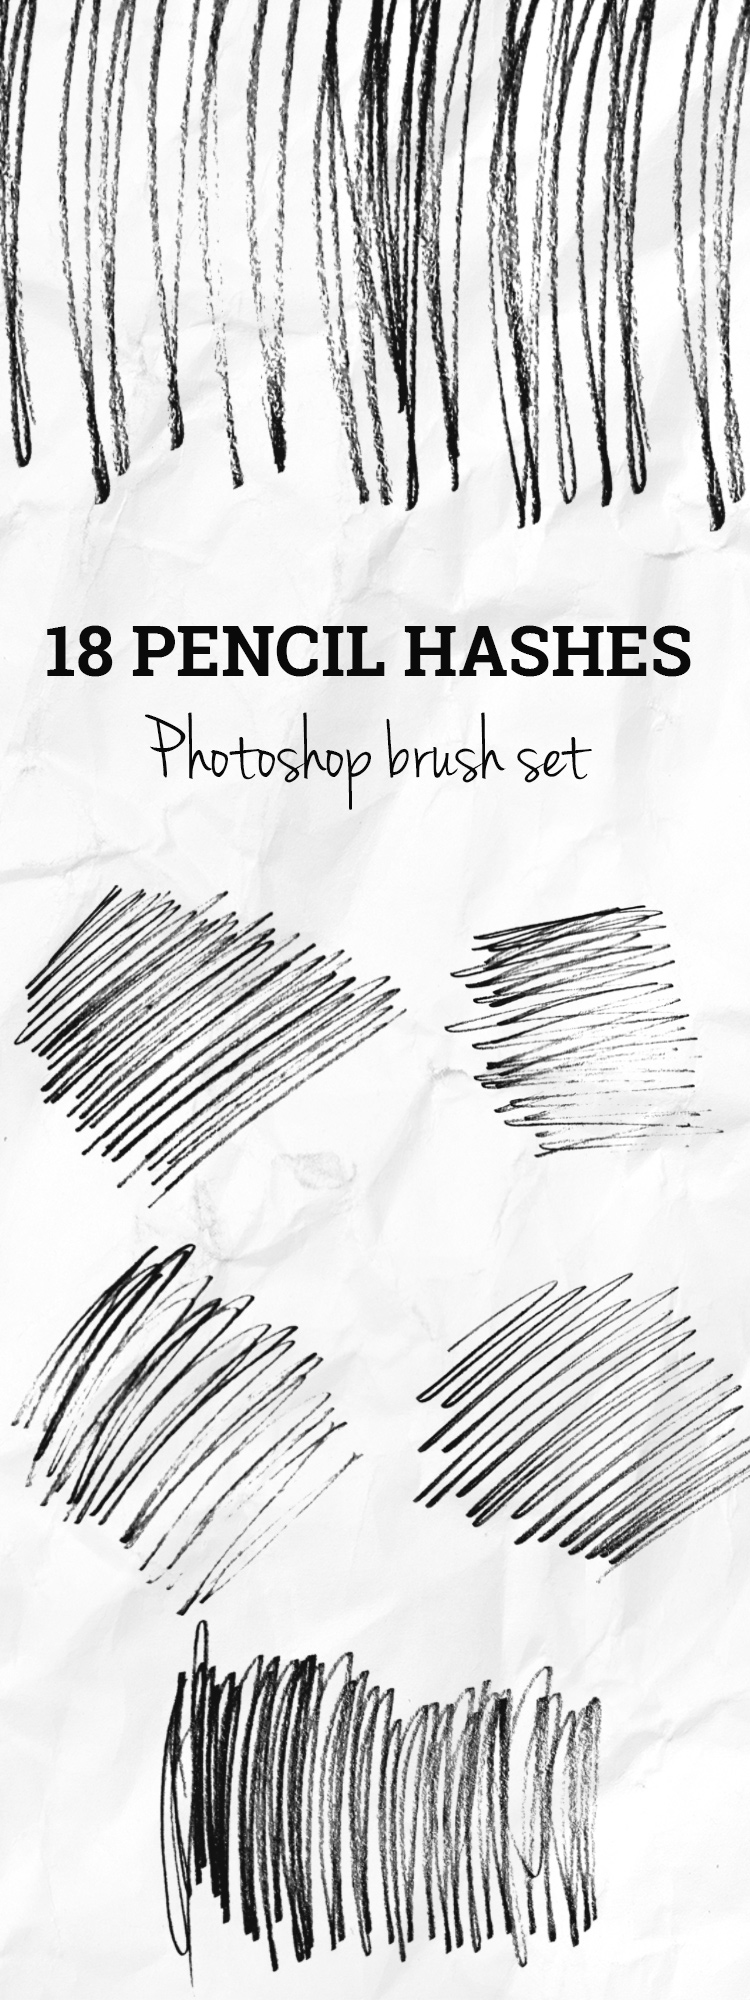 pencil hashes photoshop brush set 18 Pencil hashes Photoshop brush set